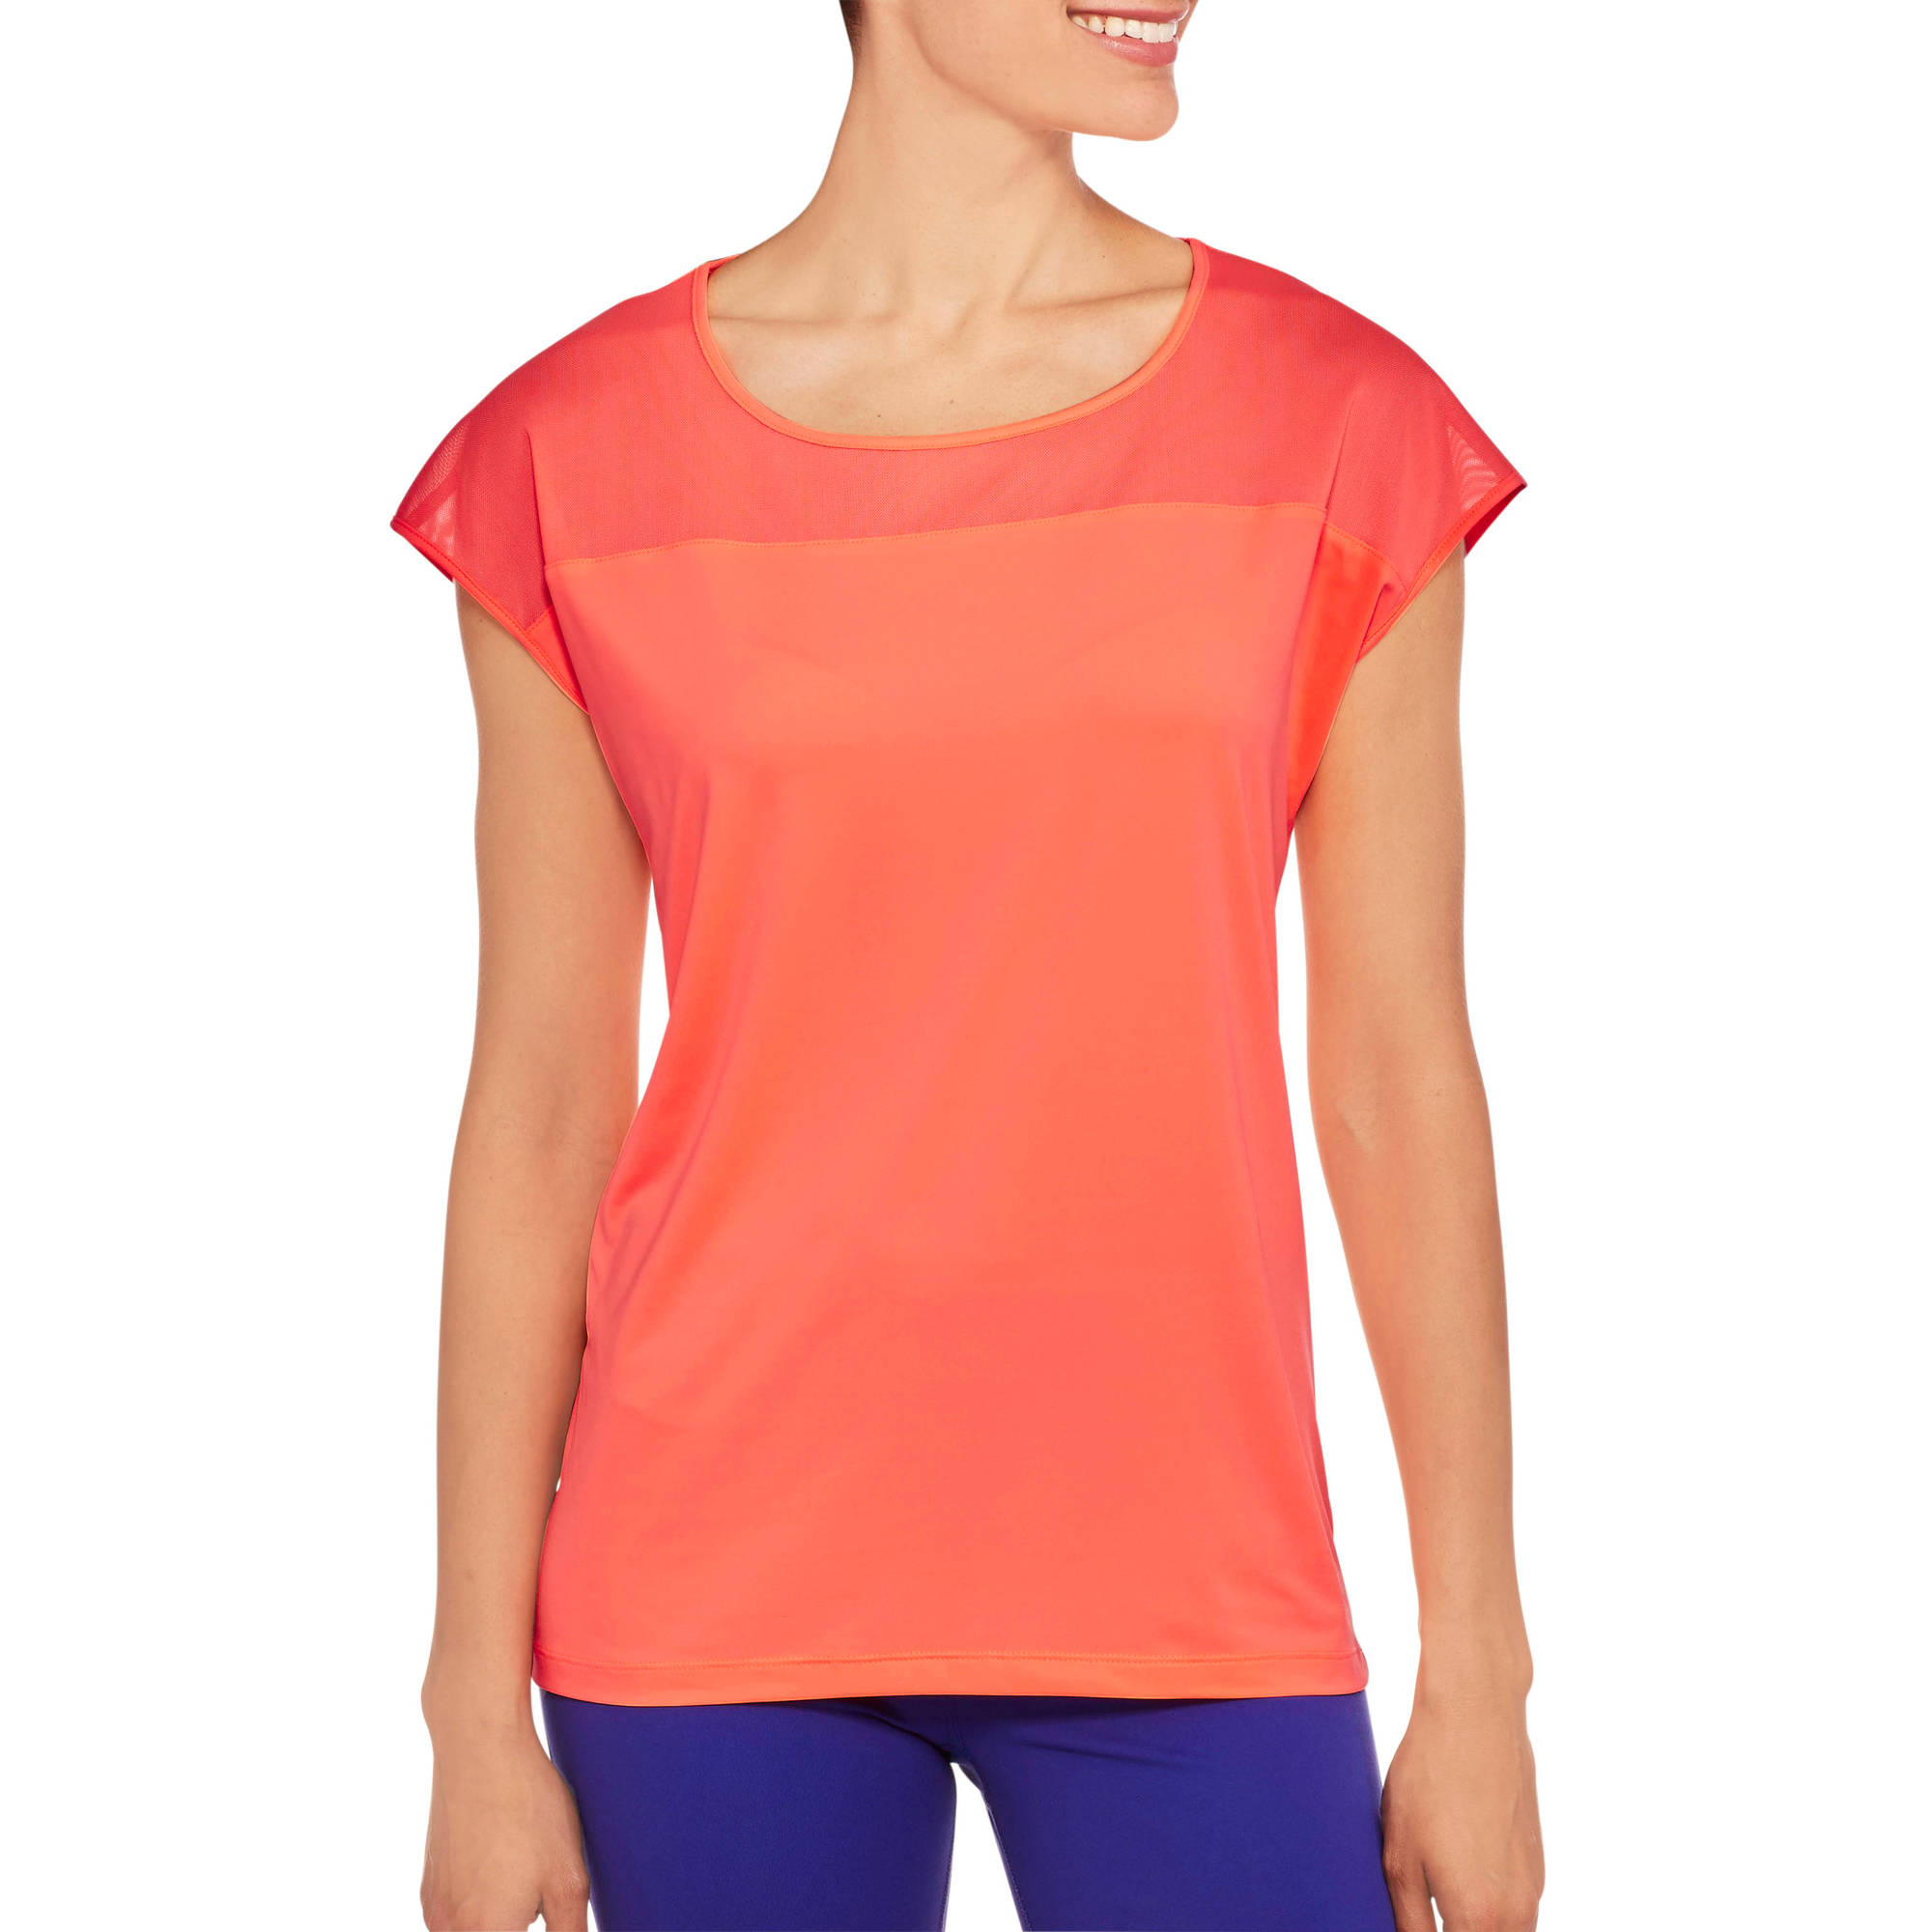 Danskin Now Women's Active Workout T-Shirt With Power Mesh Details